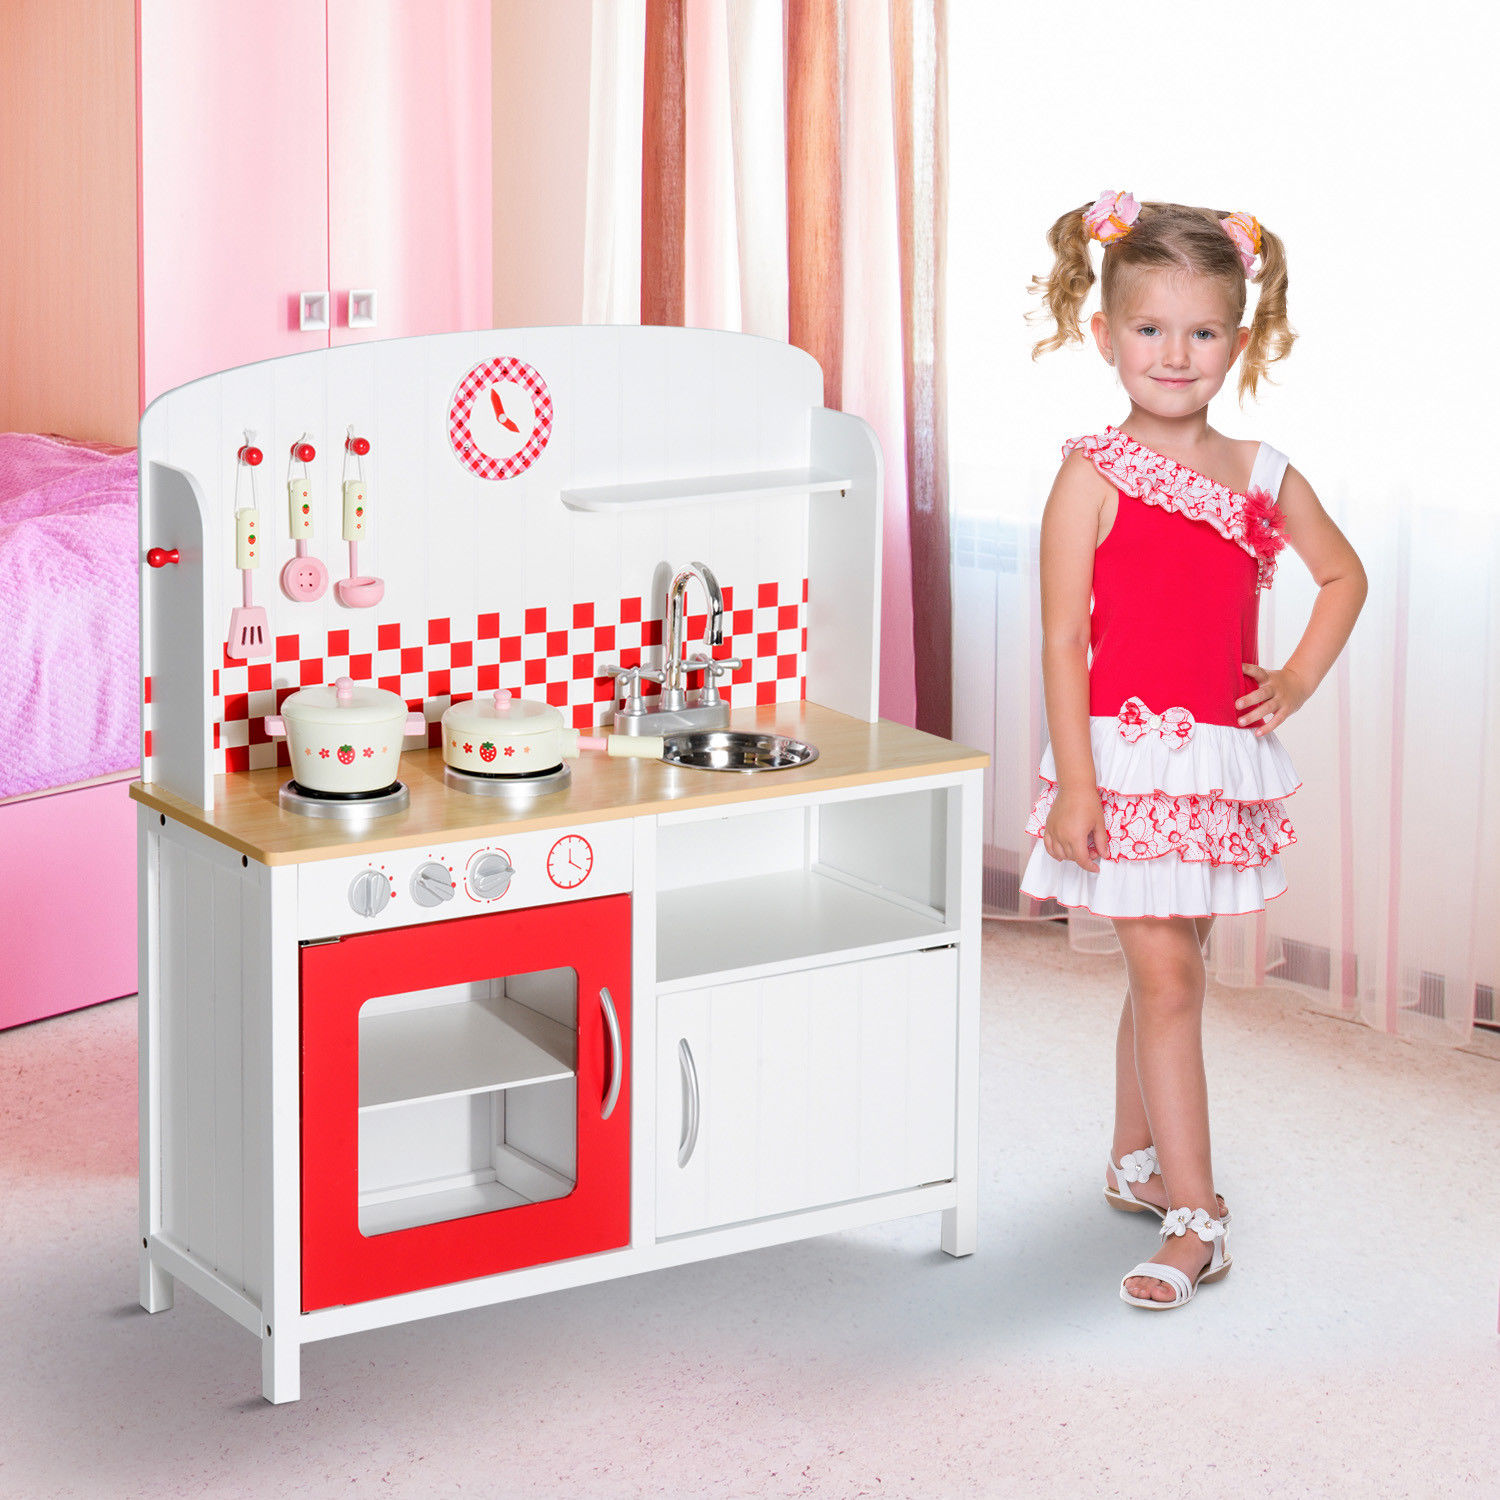 Kids Kitchen Wooden Playset Toy Cooking Roleplay 2 Styles a   eBay